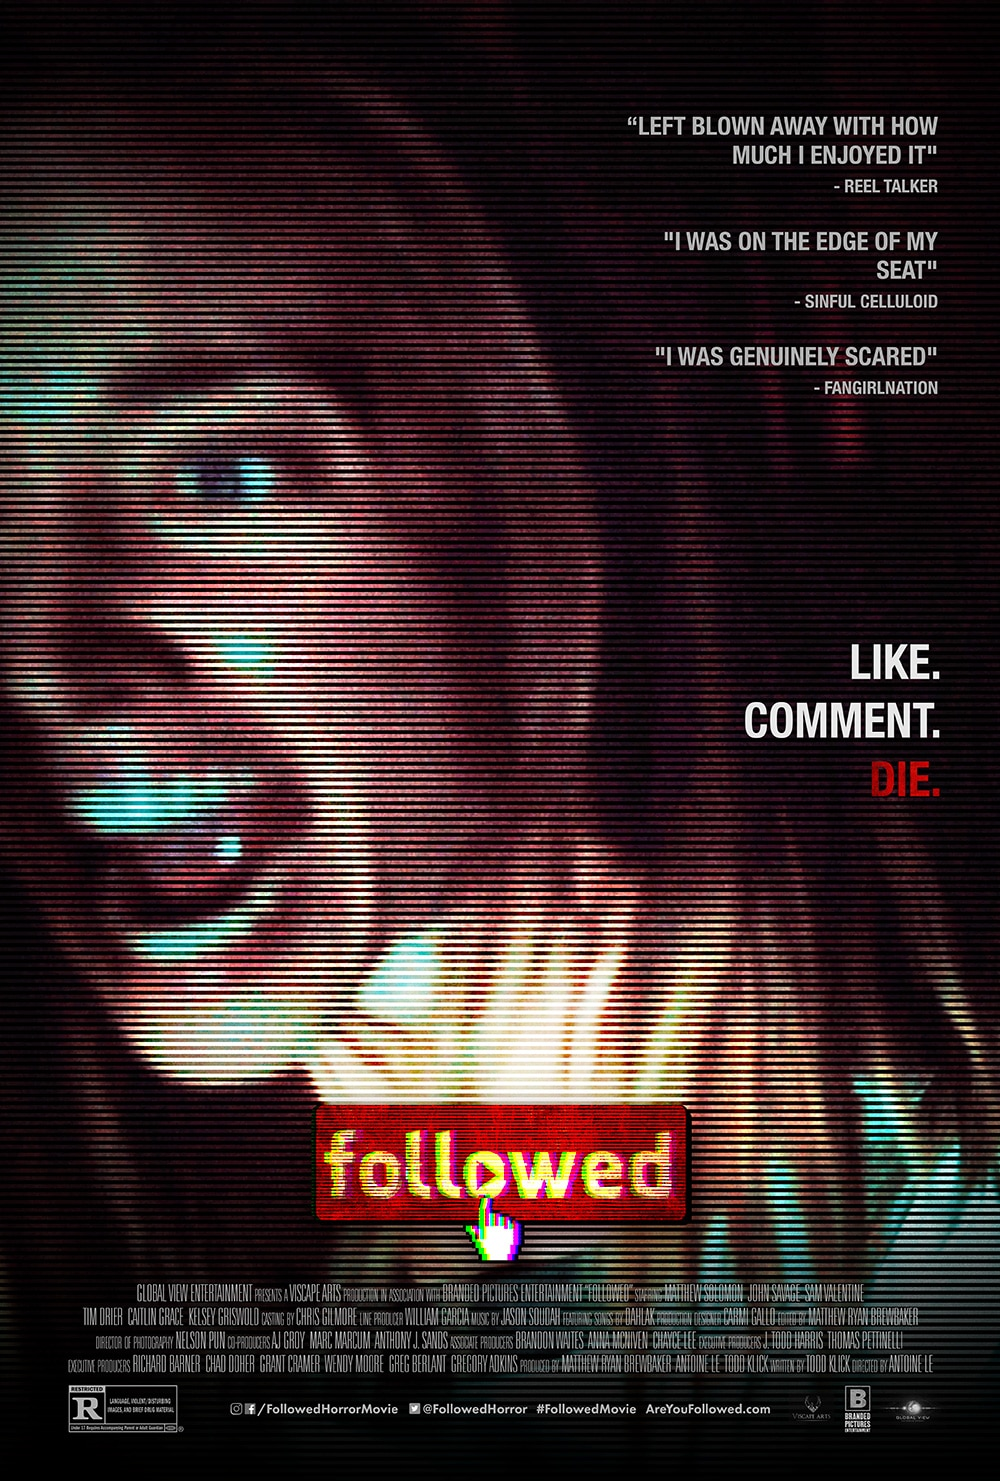 [Review] Found Footage Horror FOLLOWED Portrays the Danger of Internet Fame